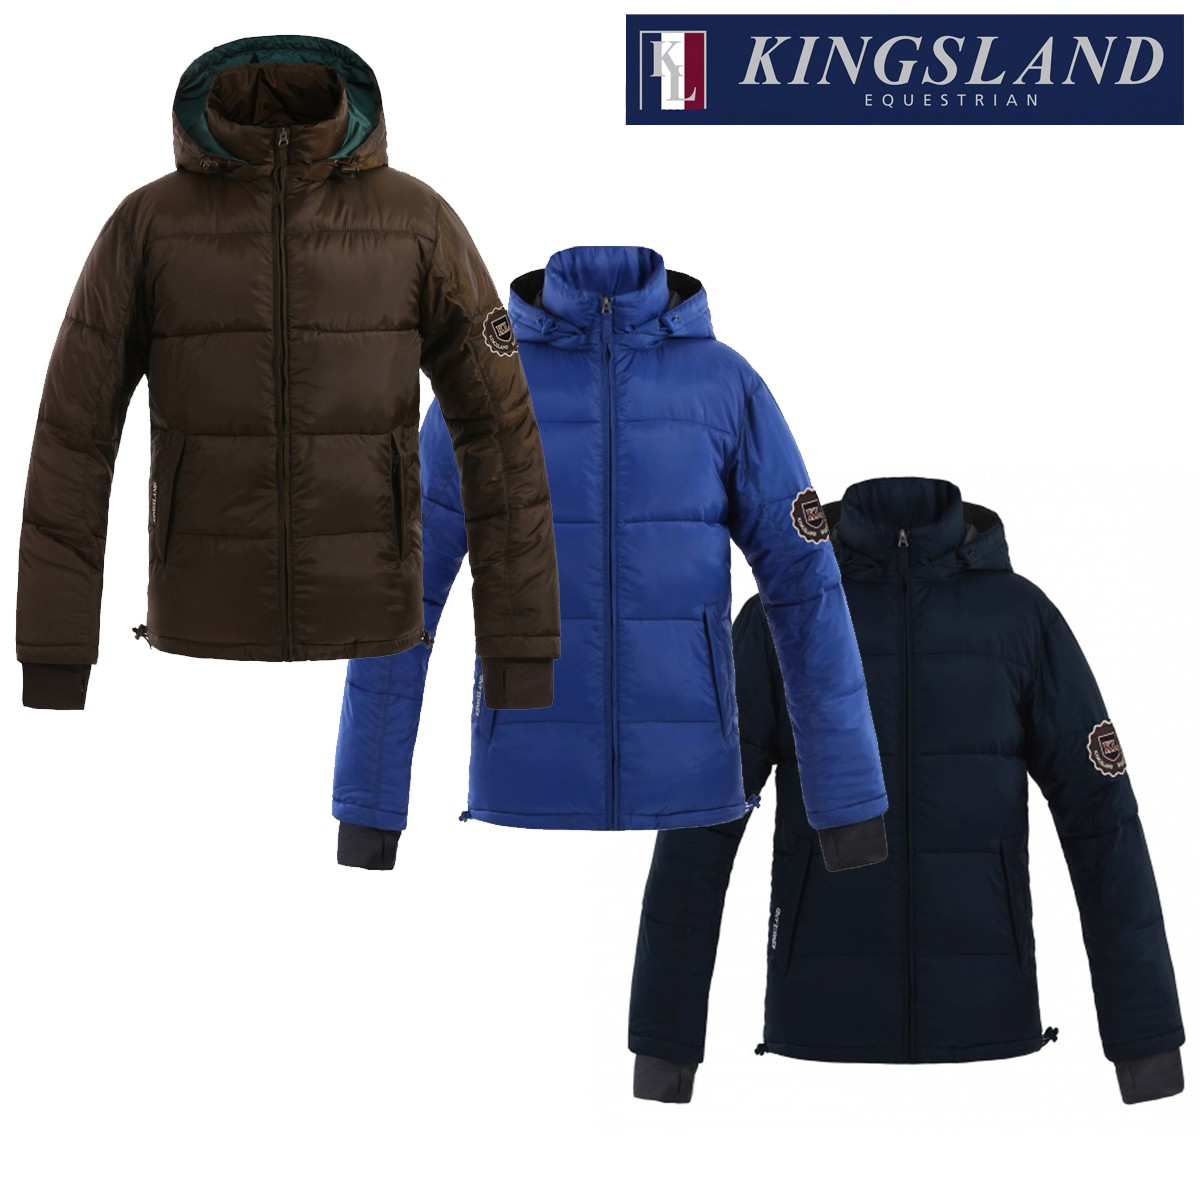 kingsland_grant_jacket_group_6